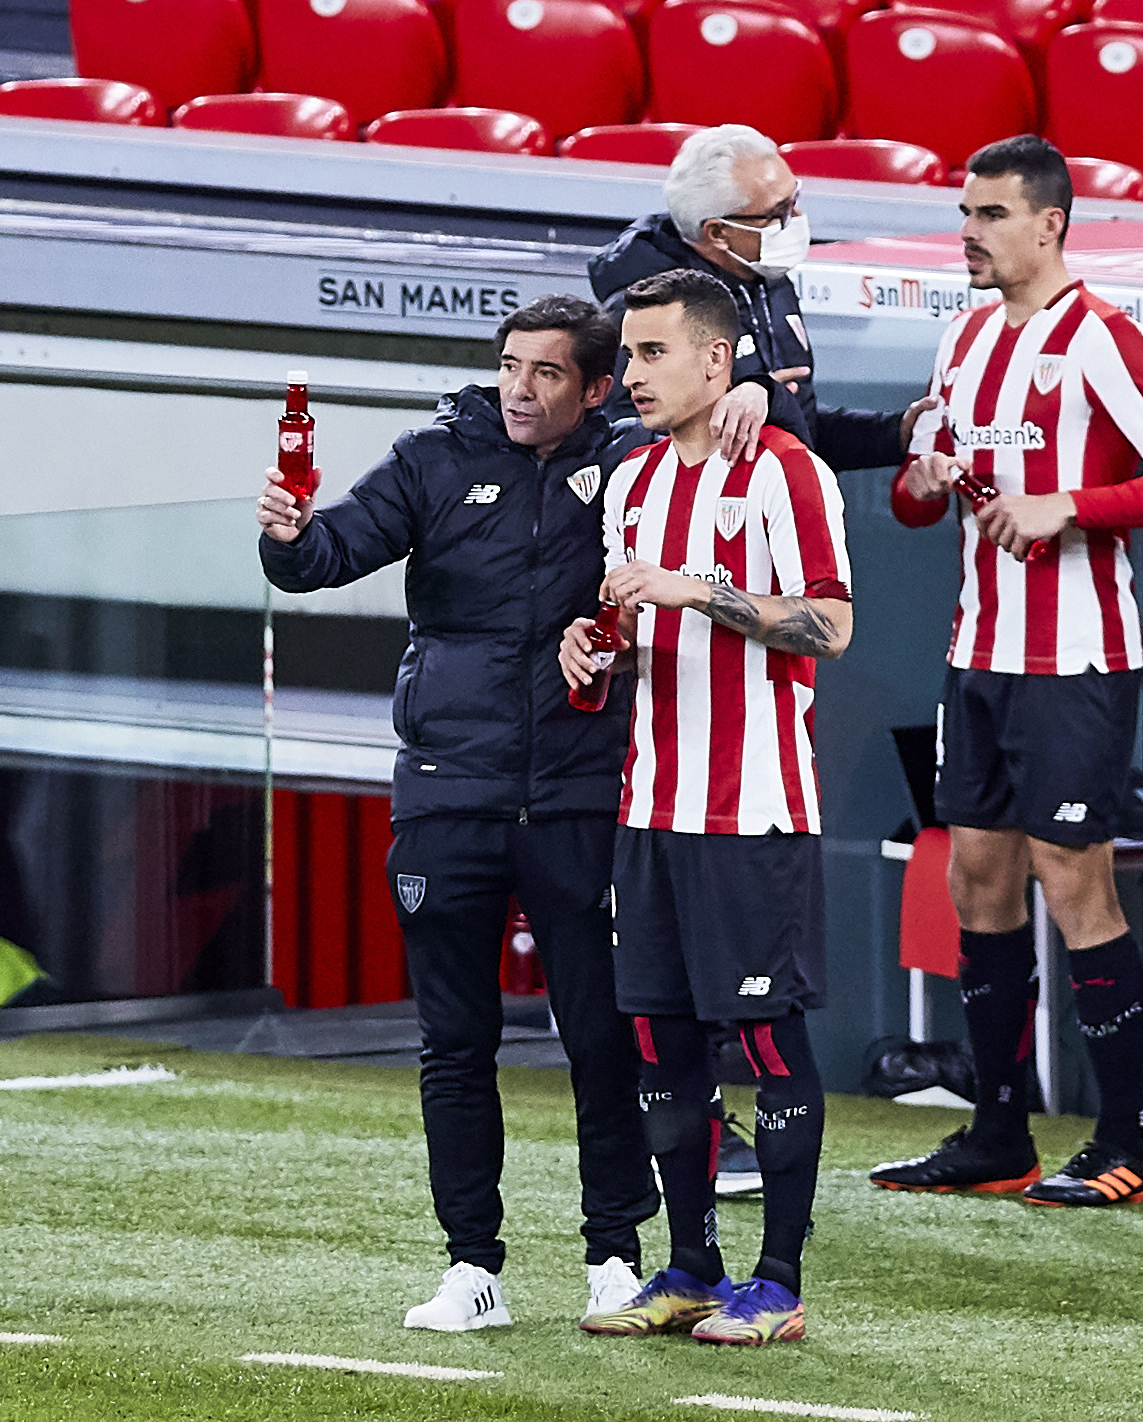 MATCH OF THE SANTANDER LEAGUE BETWEEN ATHLETIC AND BARCELONA IN SAN MAMES